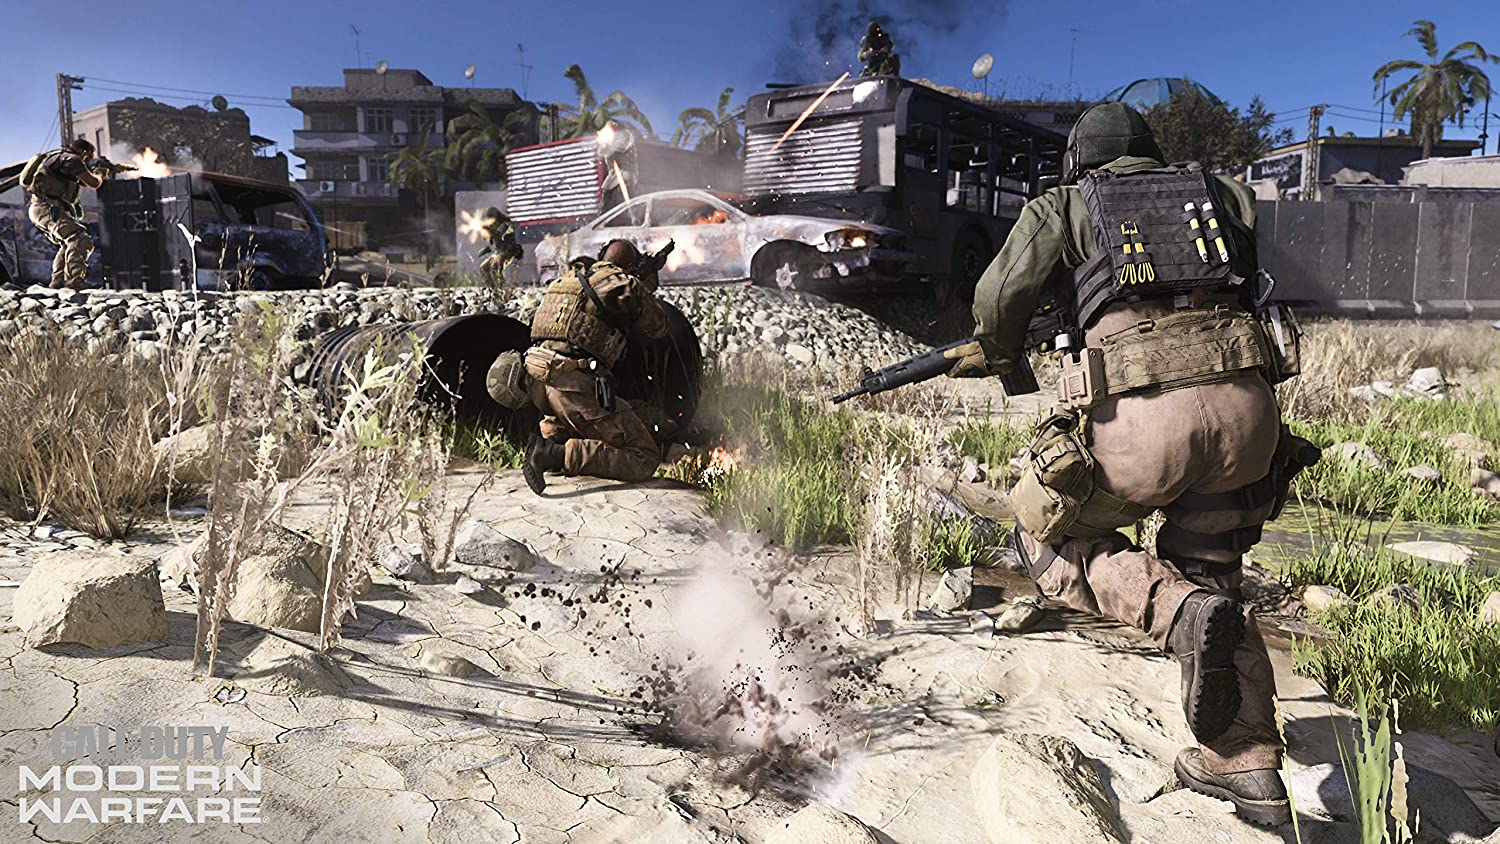 Modern Warfare: How to Play Realism Mode